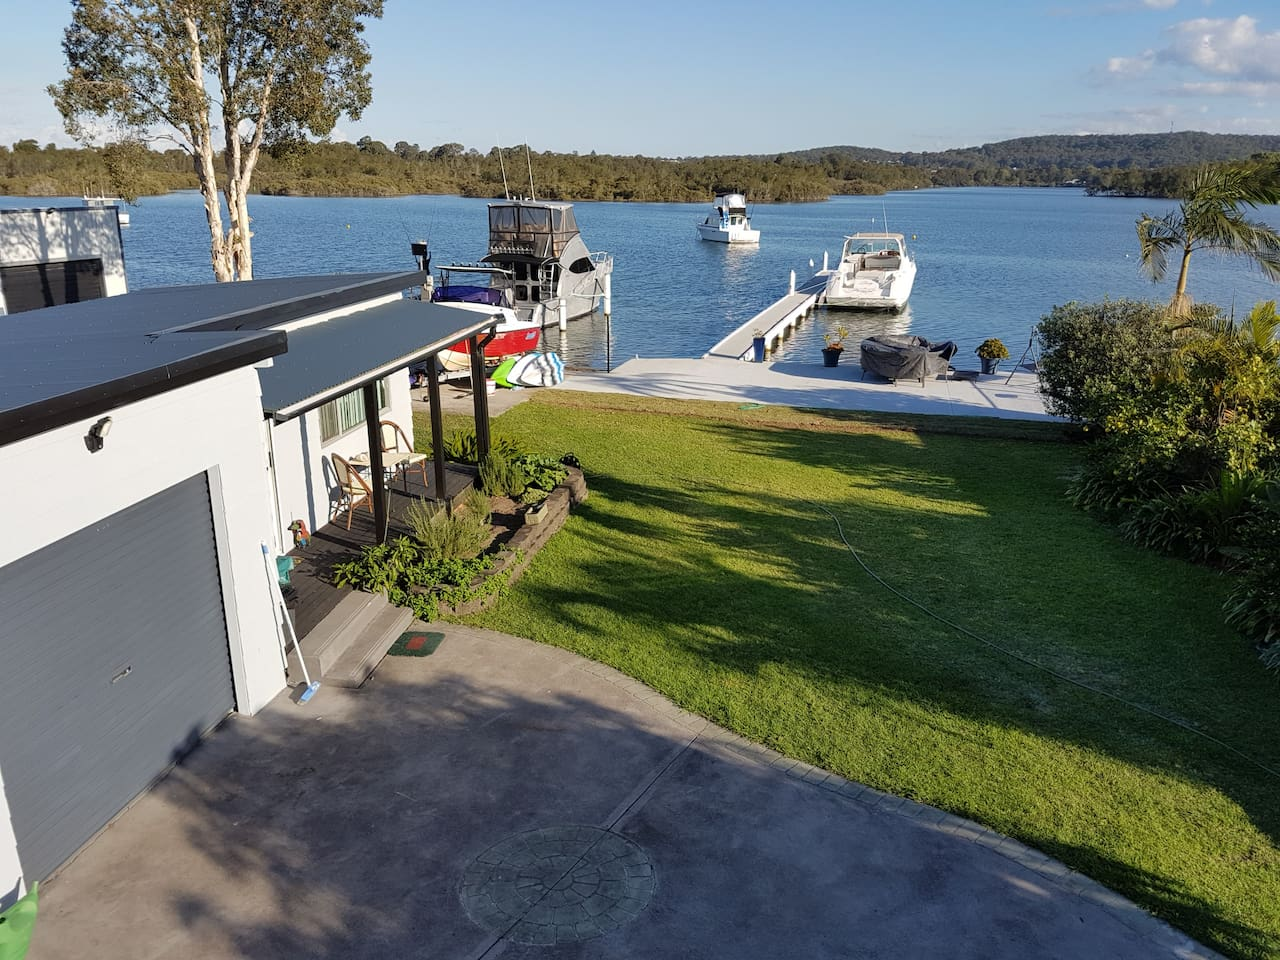 Unit 3 meters from waters edge as seen from house